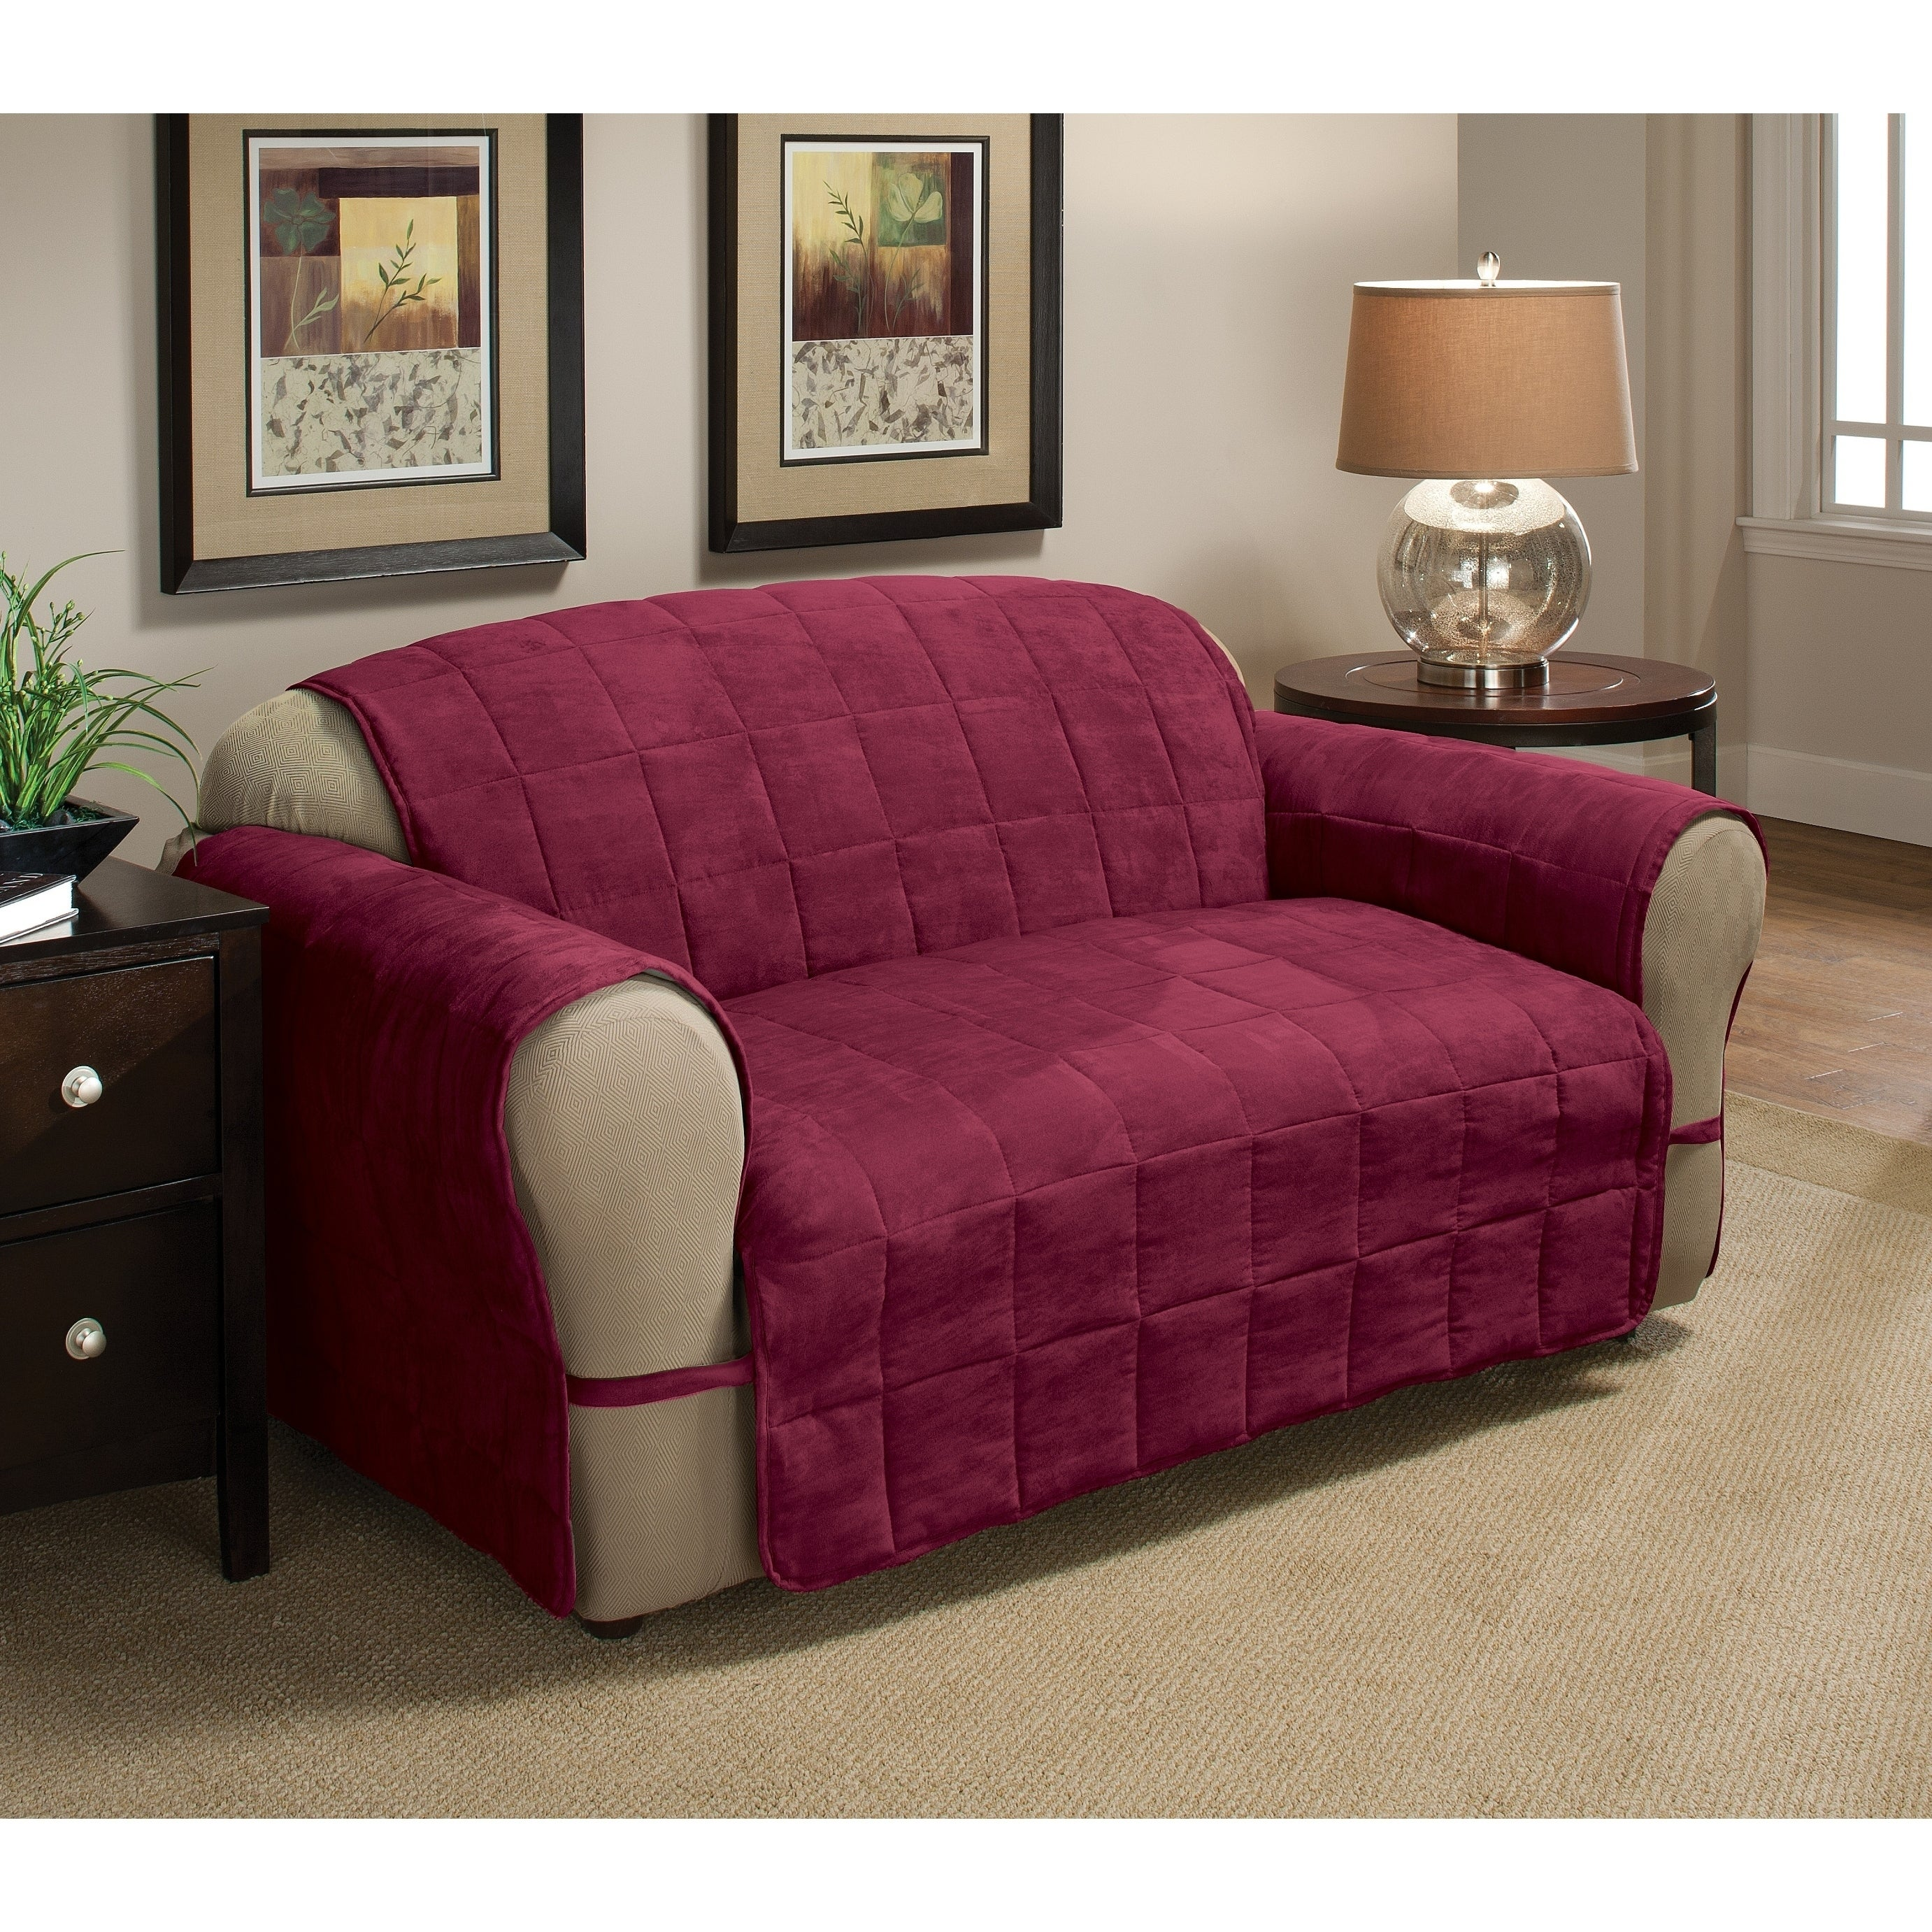 buy faux suede sofa couch slipcovers online at overstock our rh overstock com